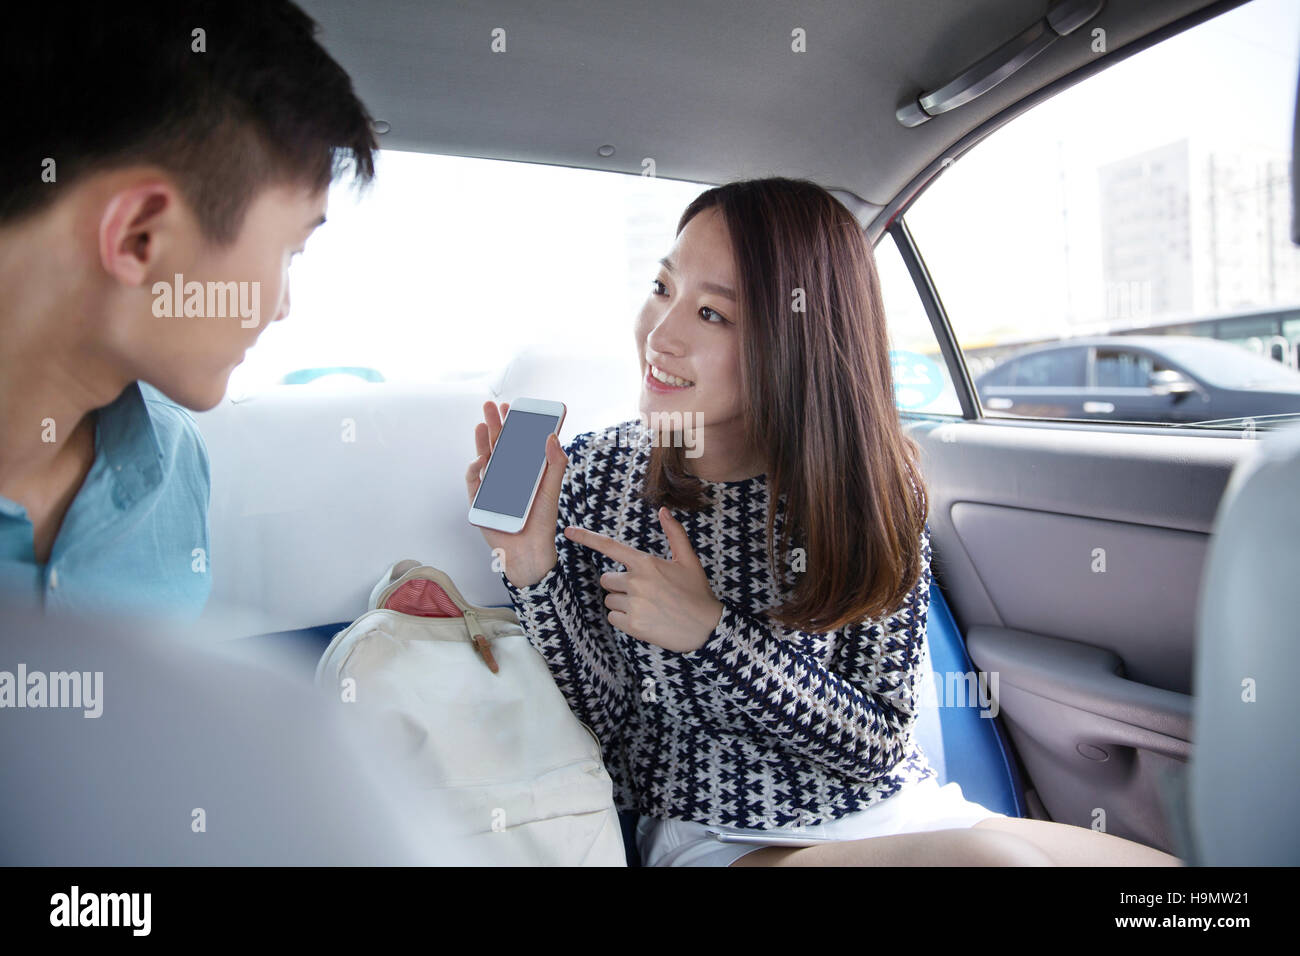 Young lovers in the car holding a mobile phone navigation - Stock Image